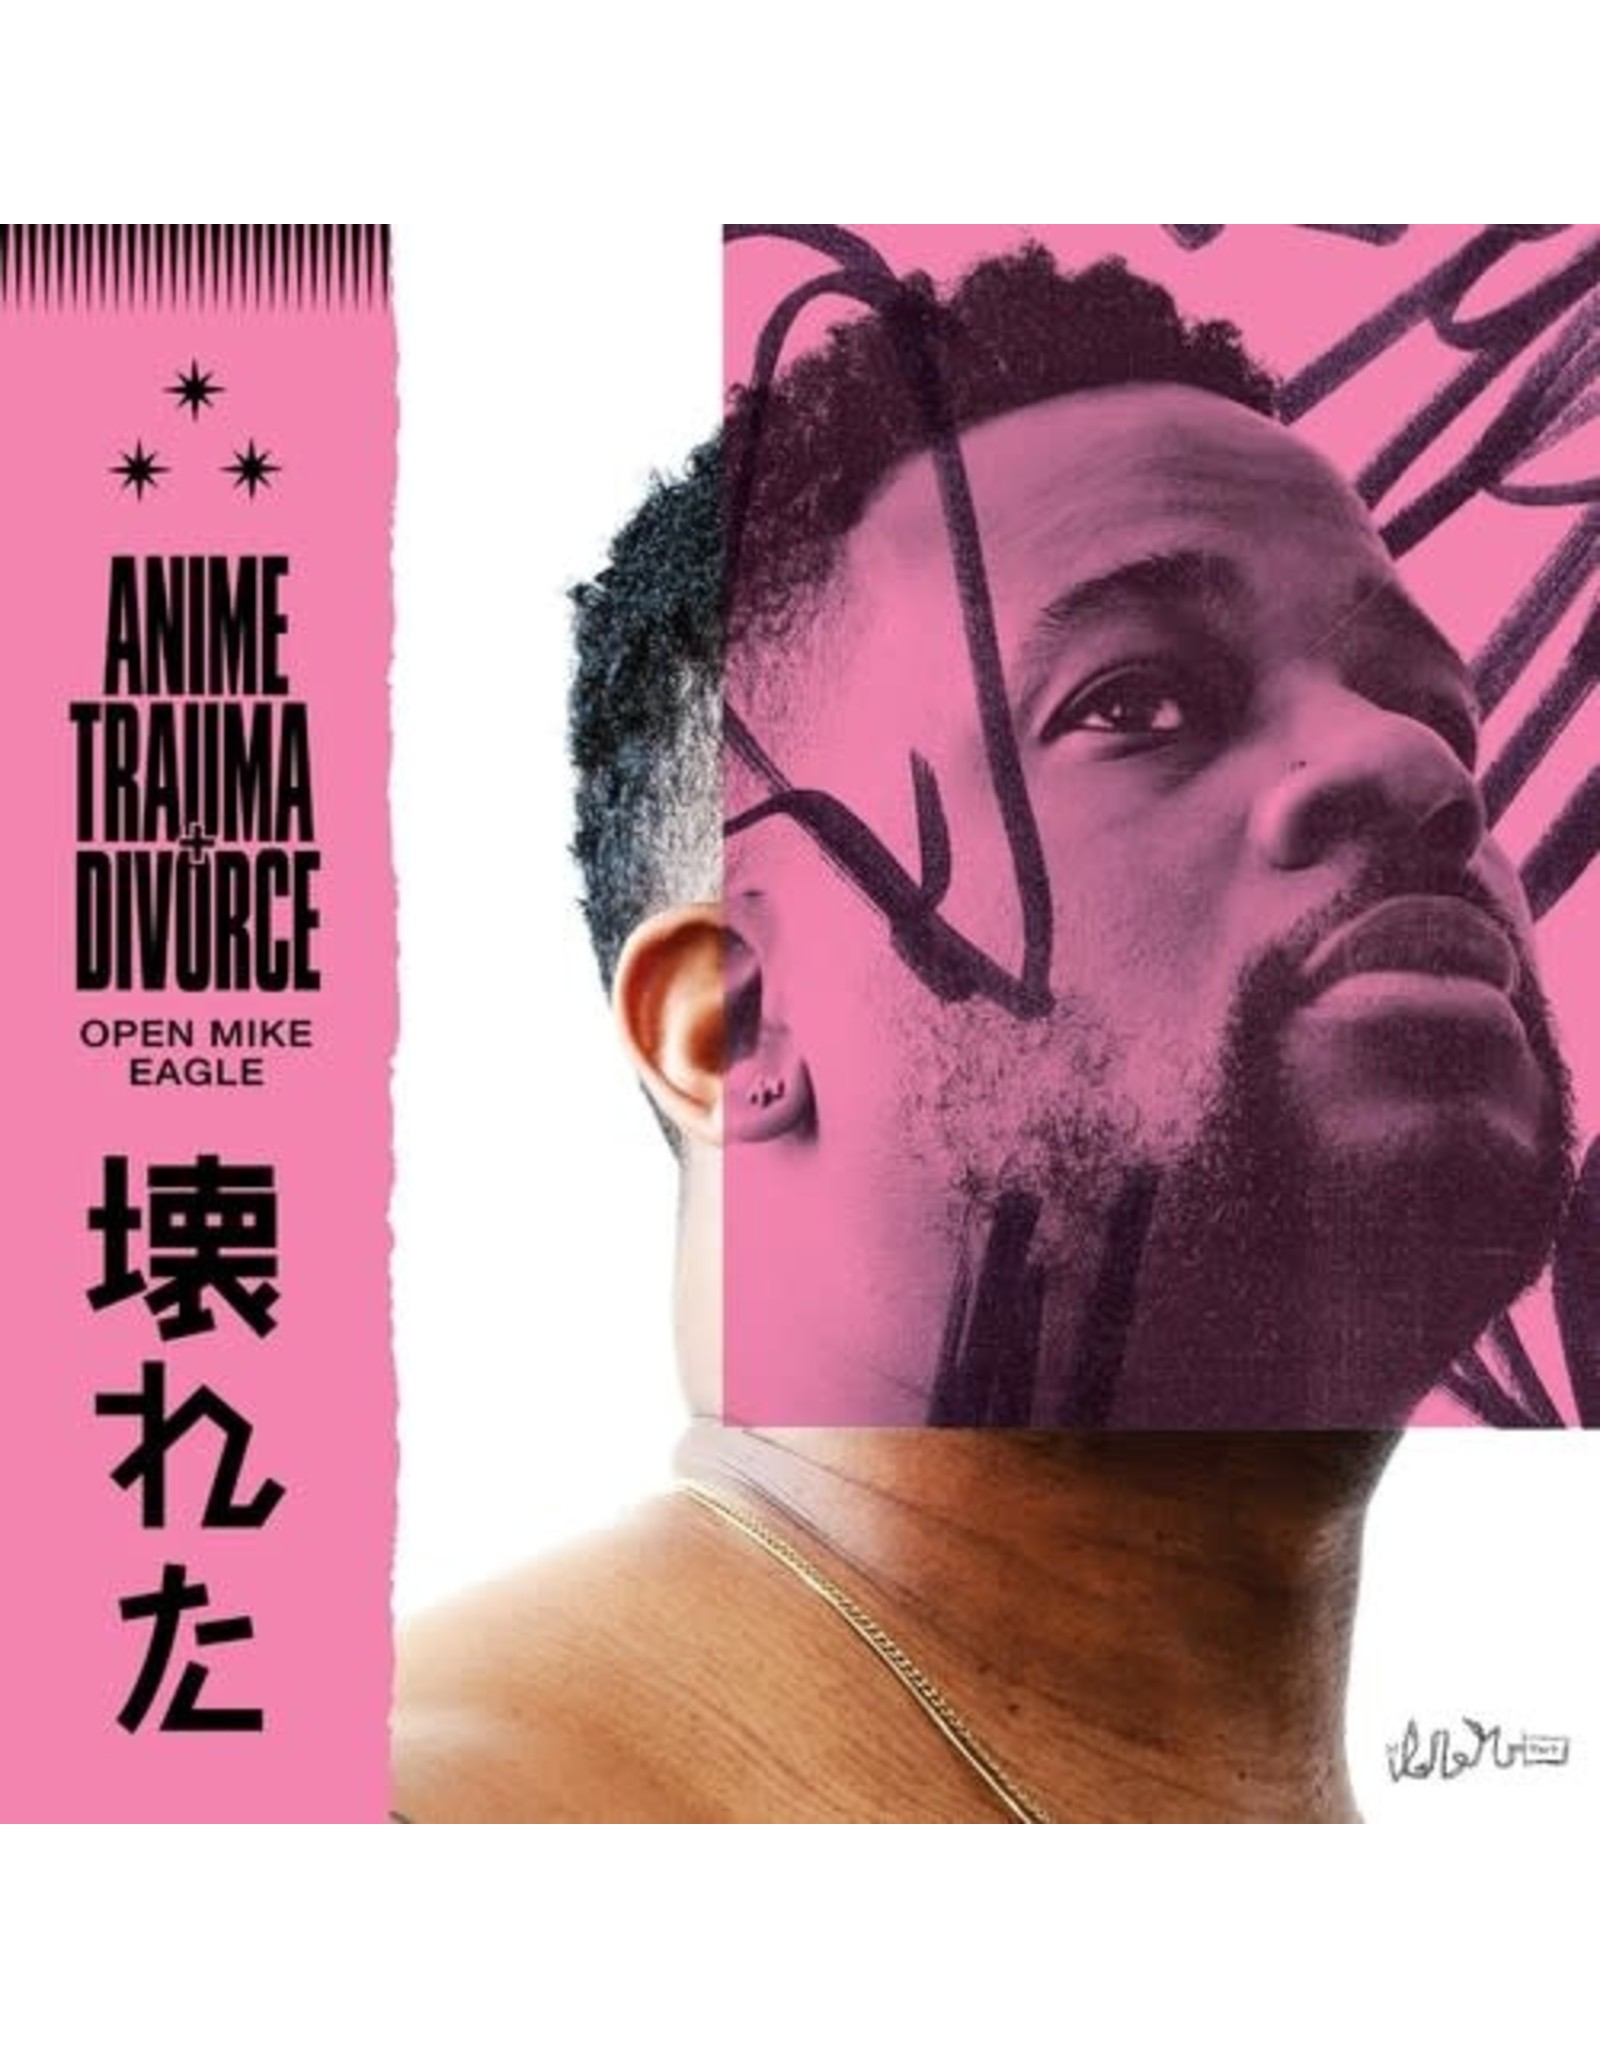 New Vinyl Open Mike Eagle - Anime Trauma And Divorce LP